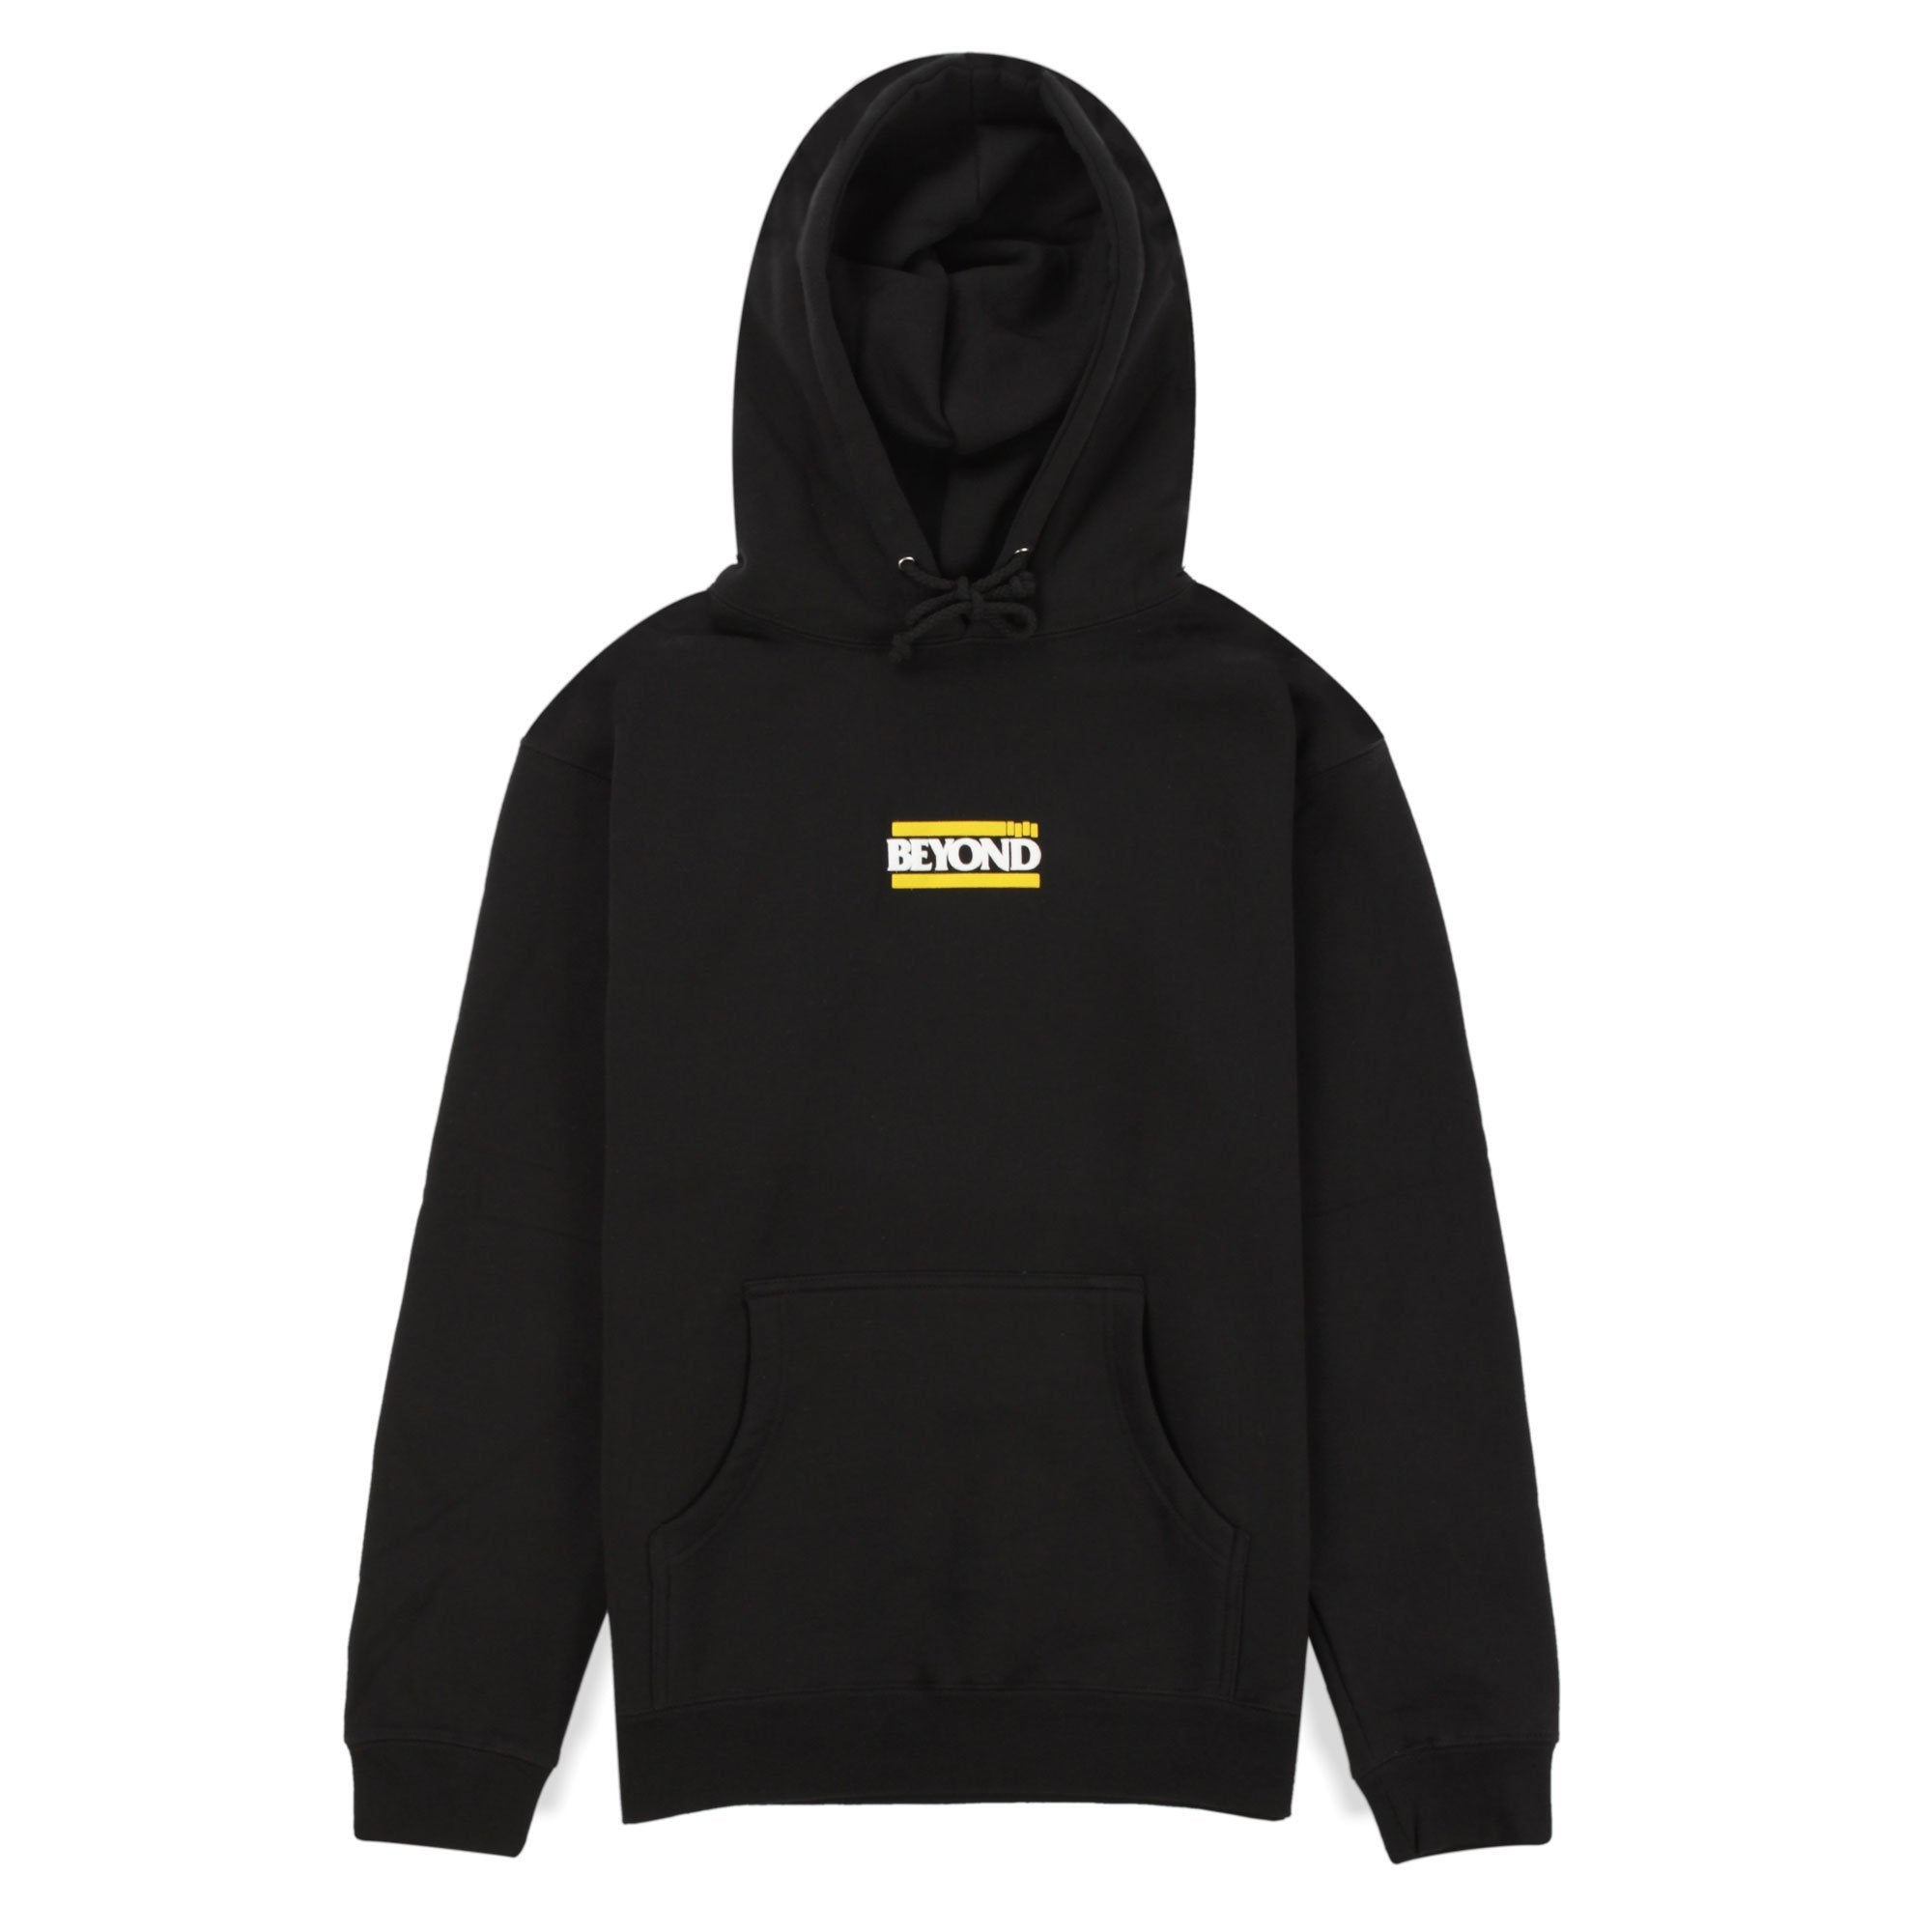 Beyond Flag Puff Hoodie Product Photo #1